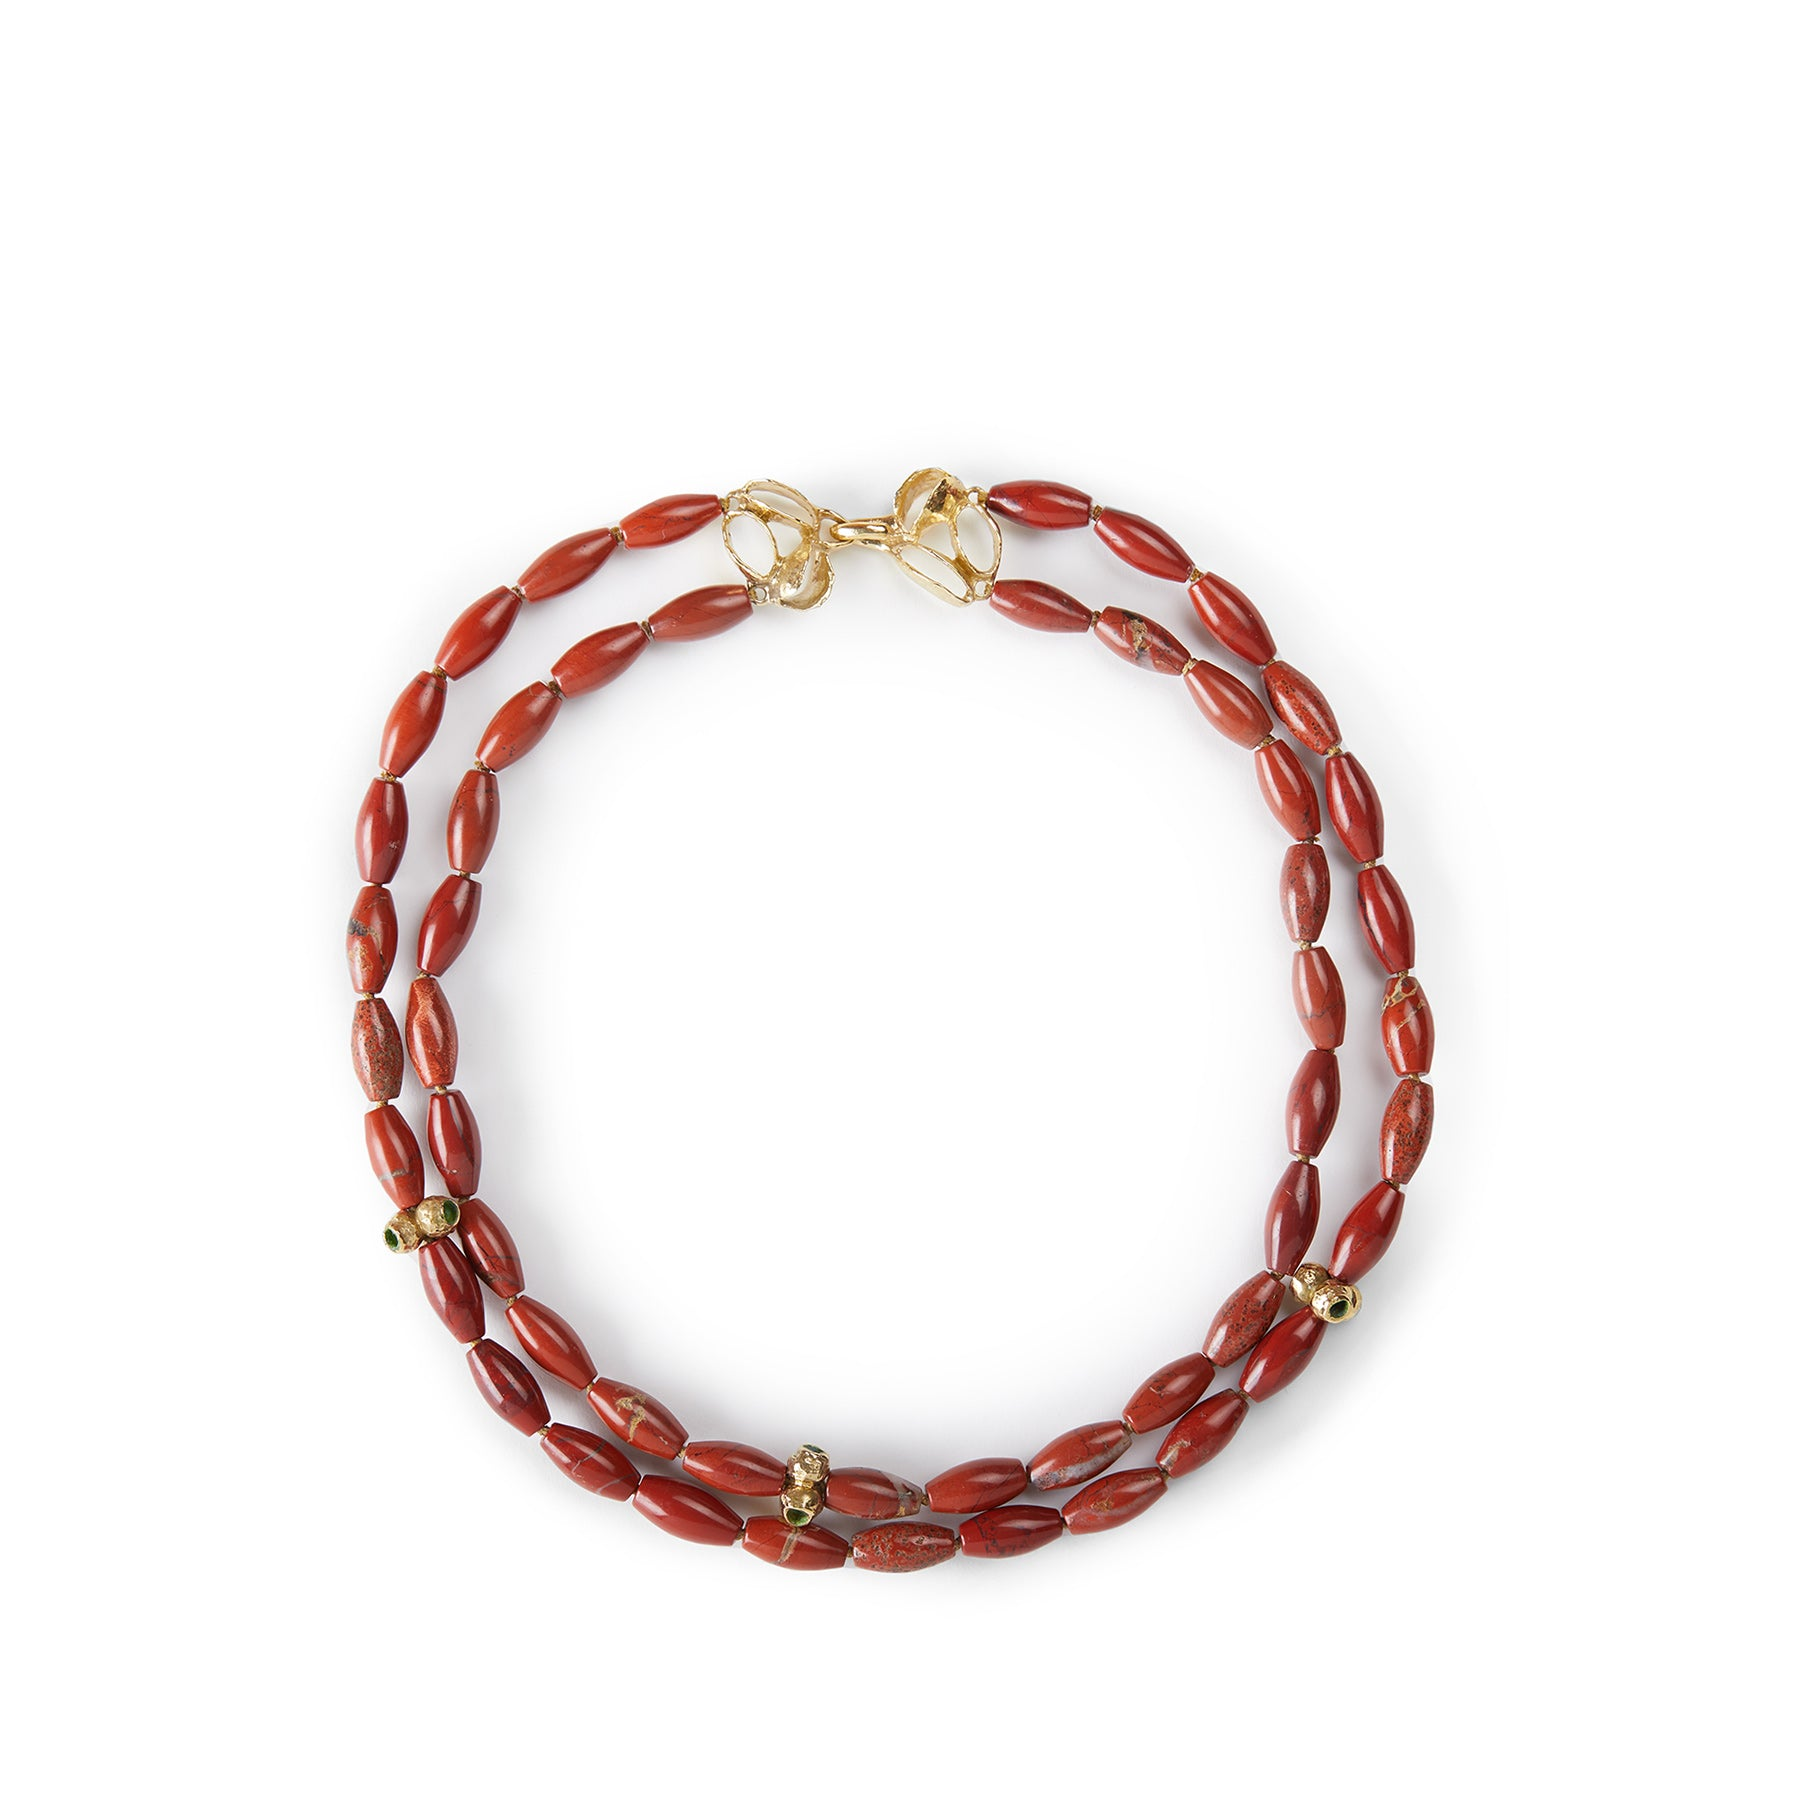 Red Jasper Necklace with Banksia Clasp and Tripod Beads Zoom Image 1